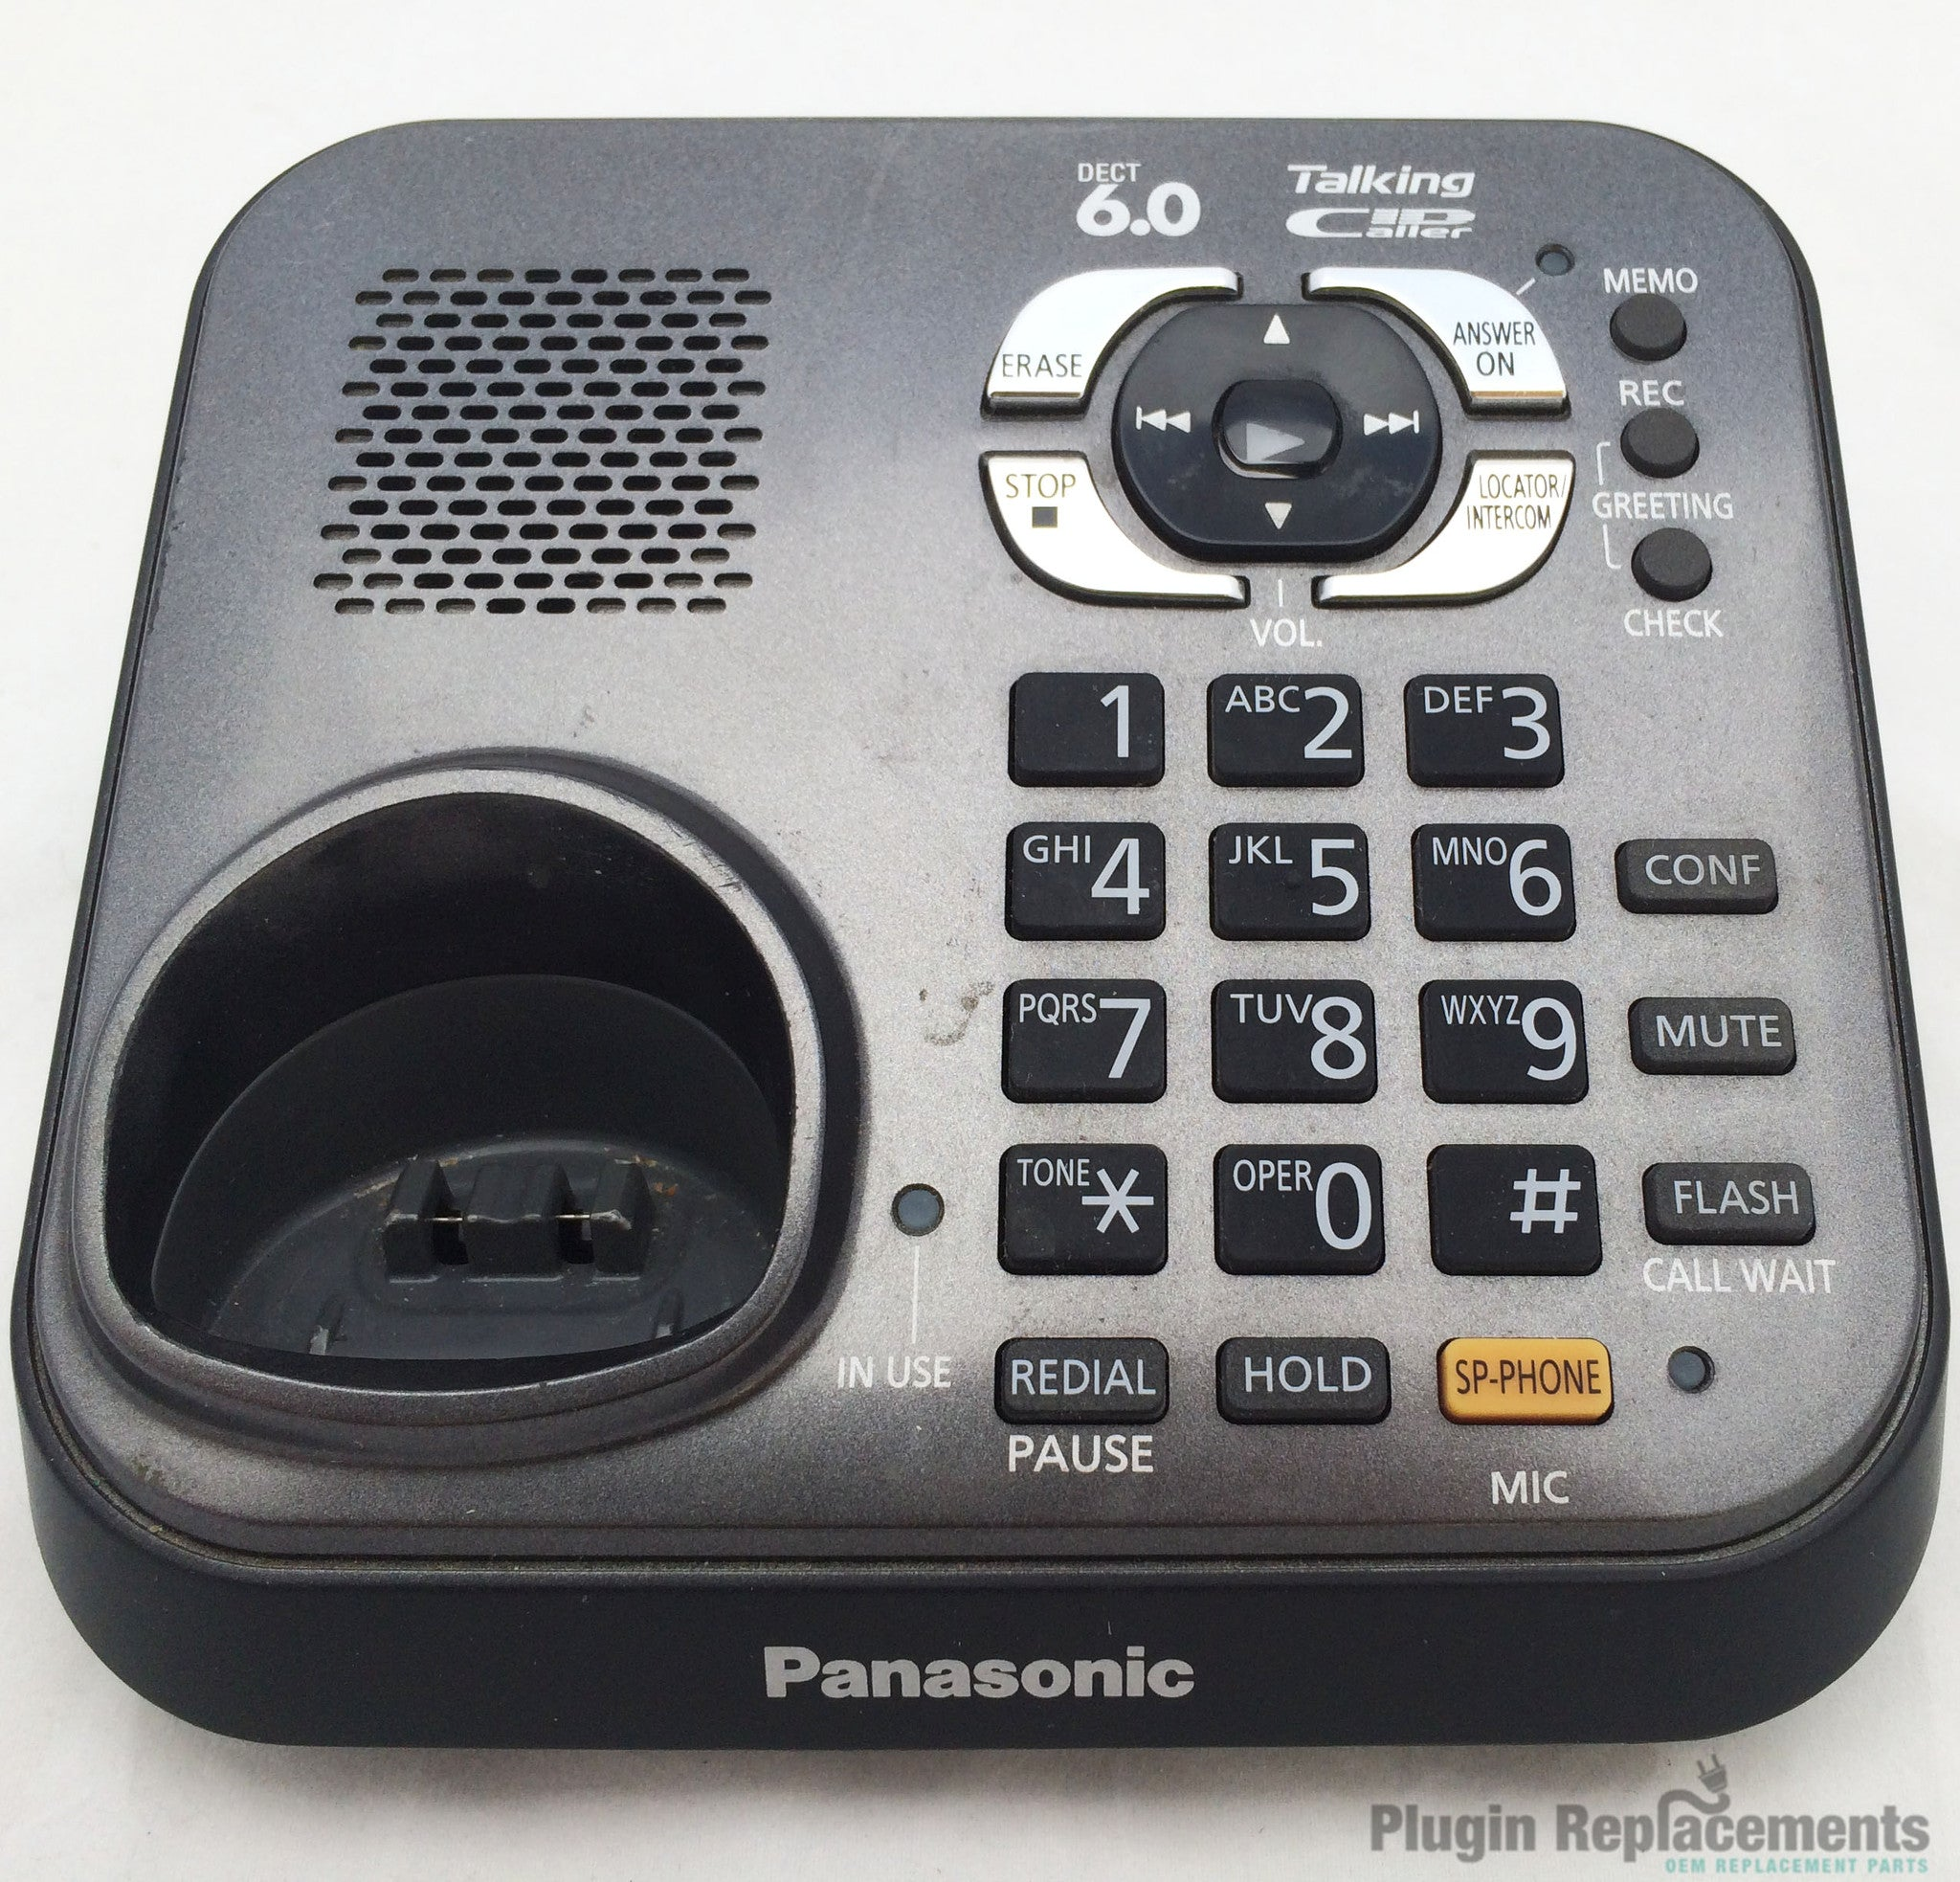 Panasonic Kx Tg9341t Cordless Phone Main Base Only Replacement No Ada Plugin Replacements